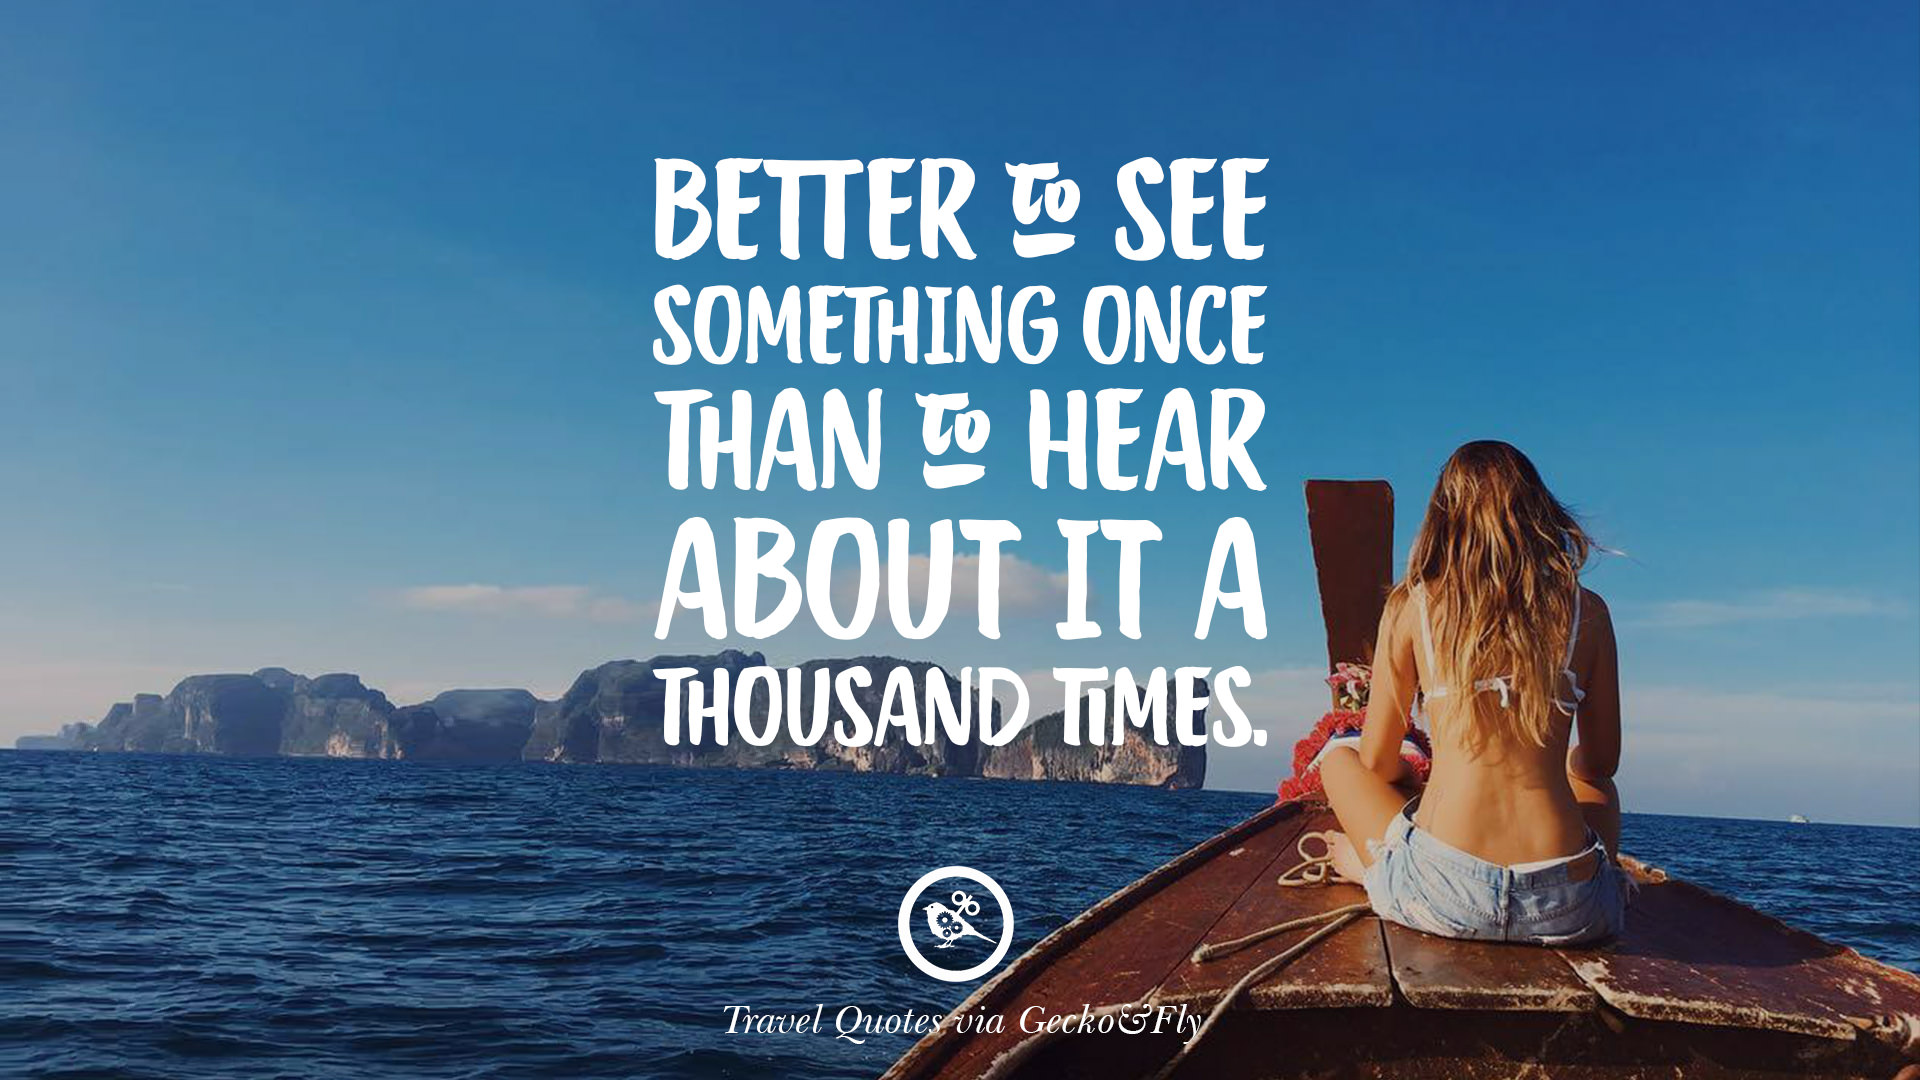 Better To See Something Once Than To Hear About It A Thousand Times.